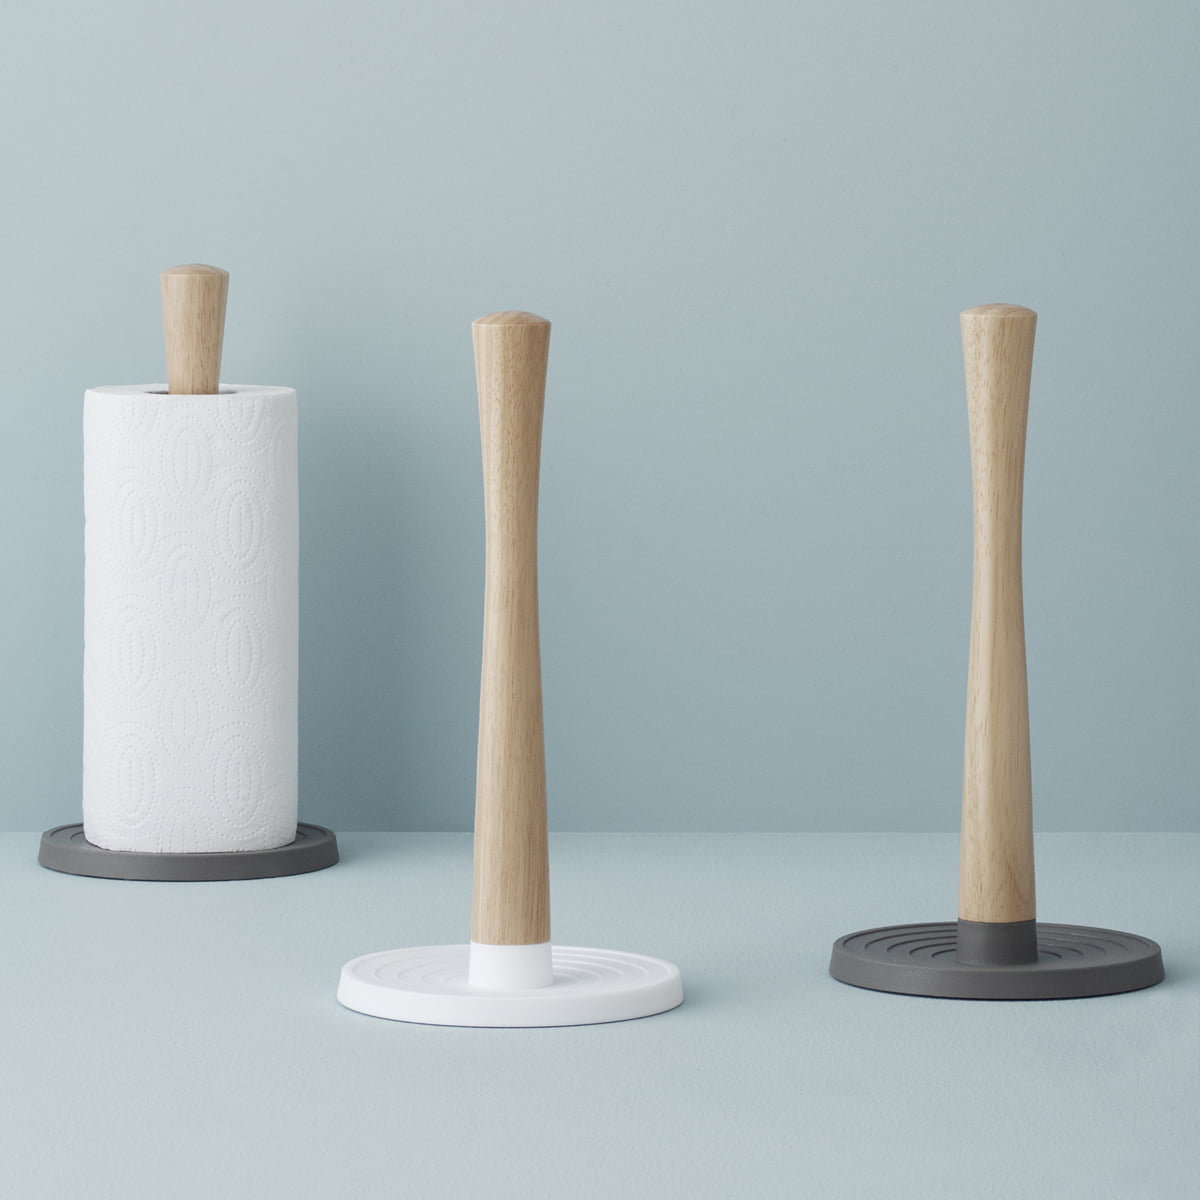 Household Goods · Paper Towel Holders · Modern Kitchen Helper With A  Natural Touch